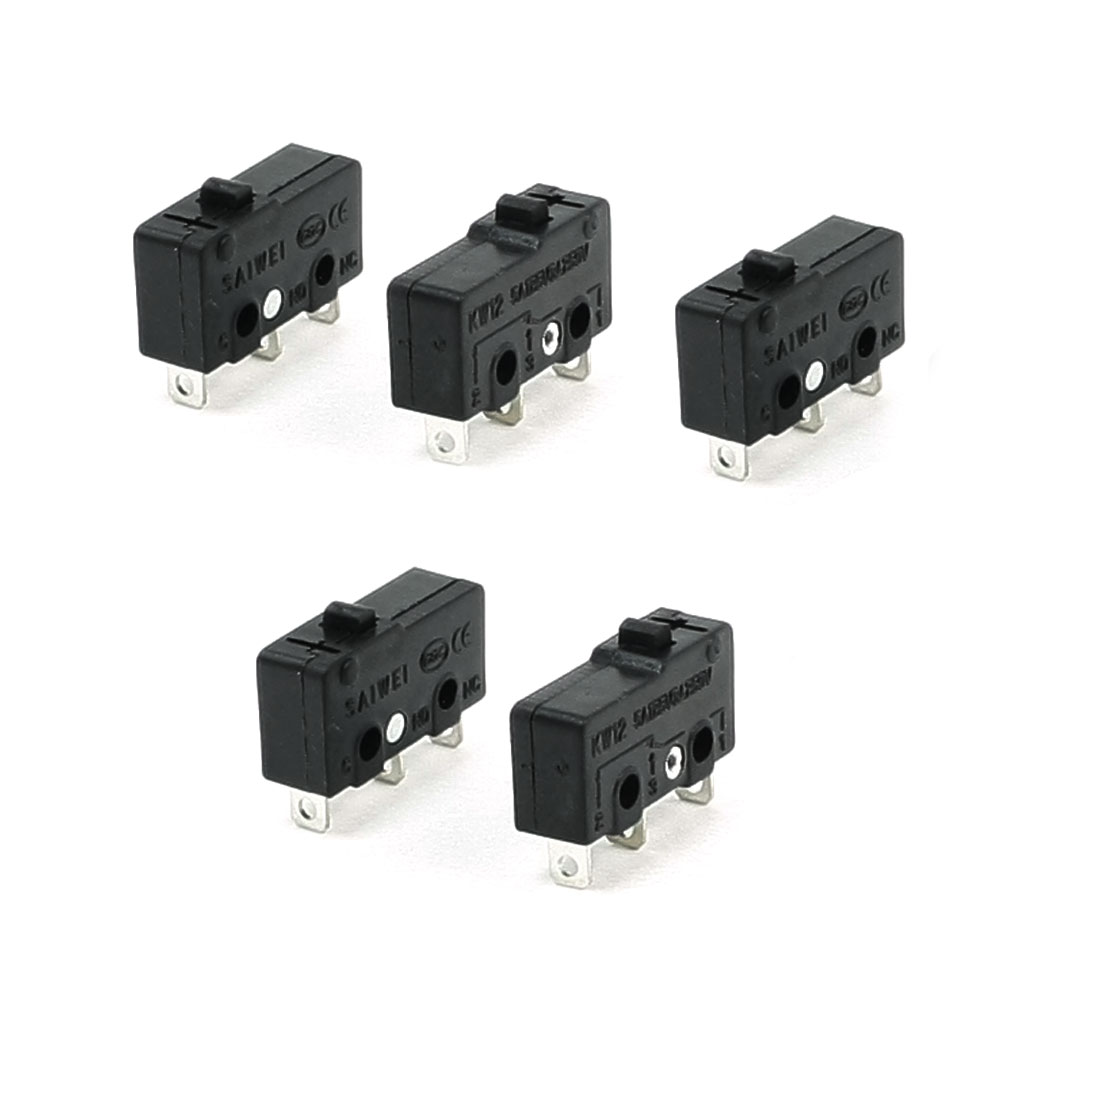 5 x 3-Terminal SPDT 1NO 1NC Momentary Micro Switch 3A/250VAC 5A/125AC